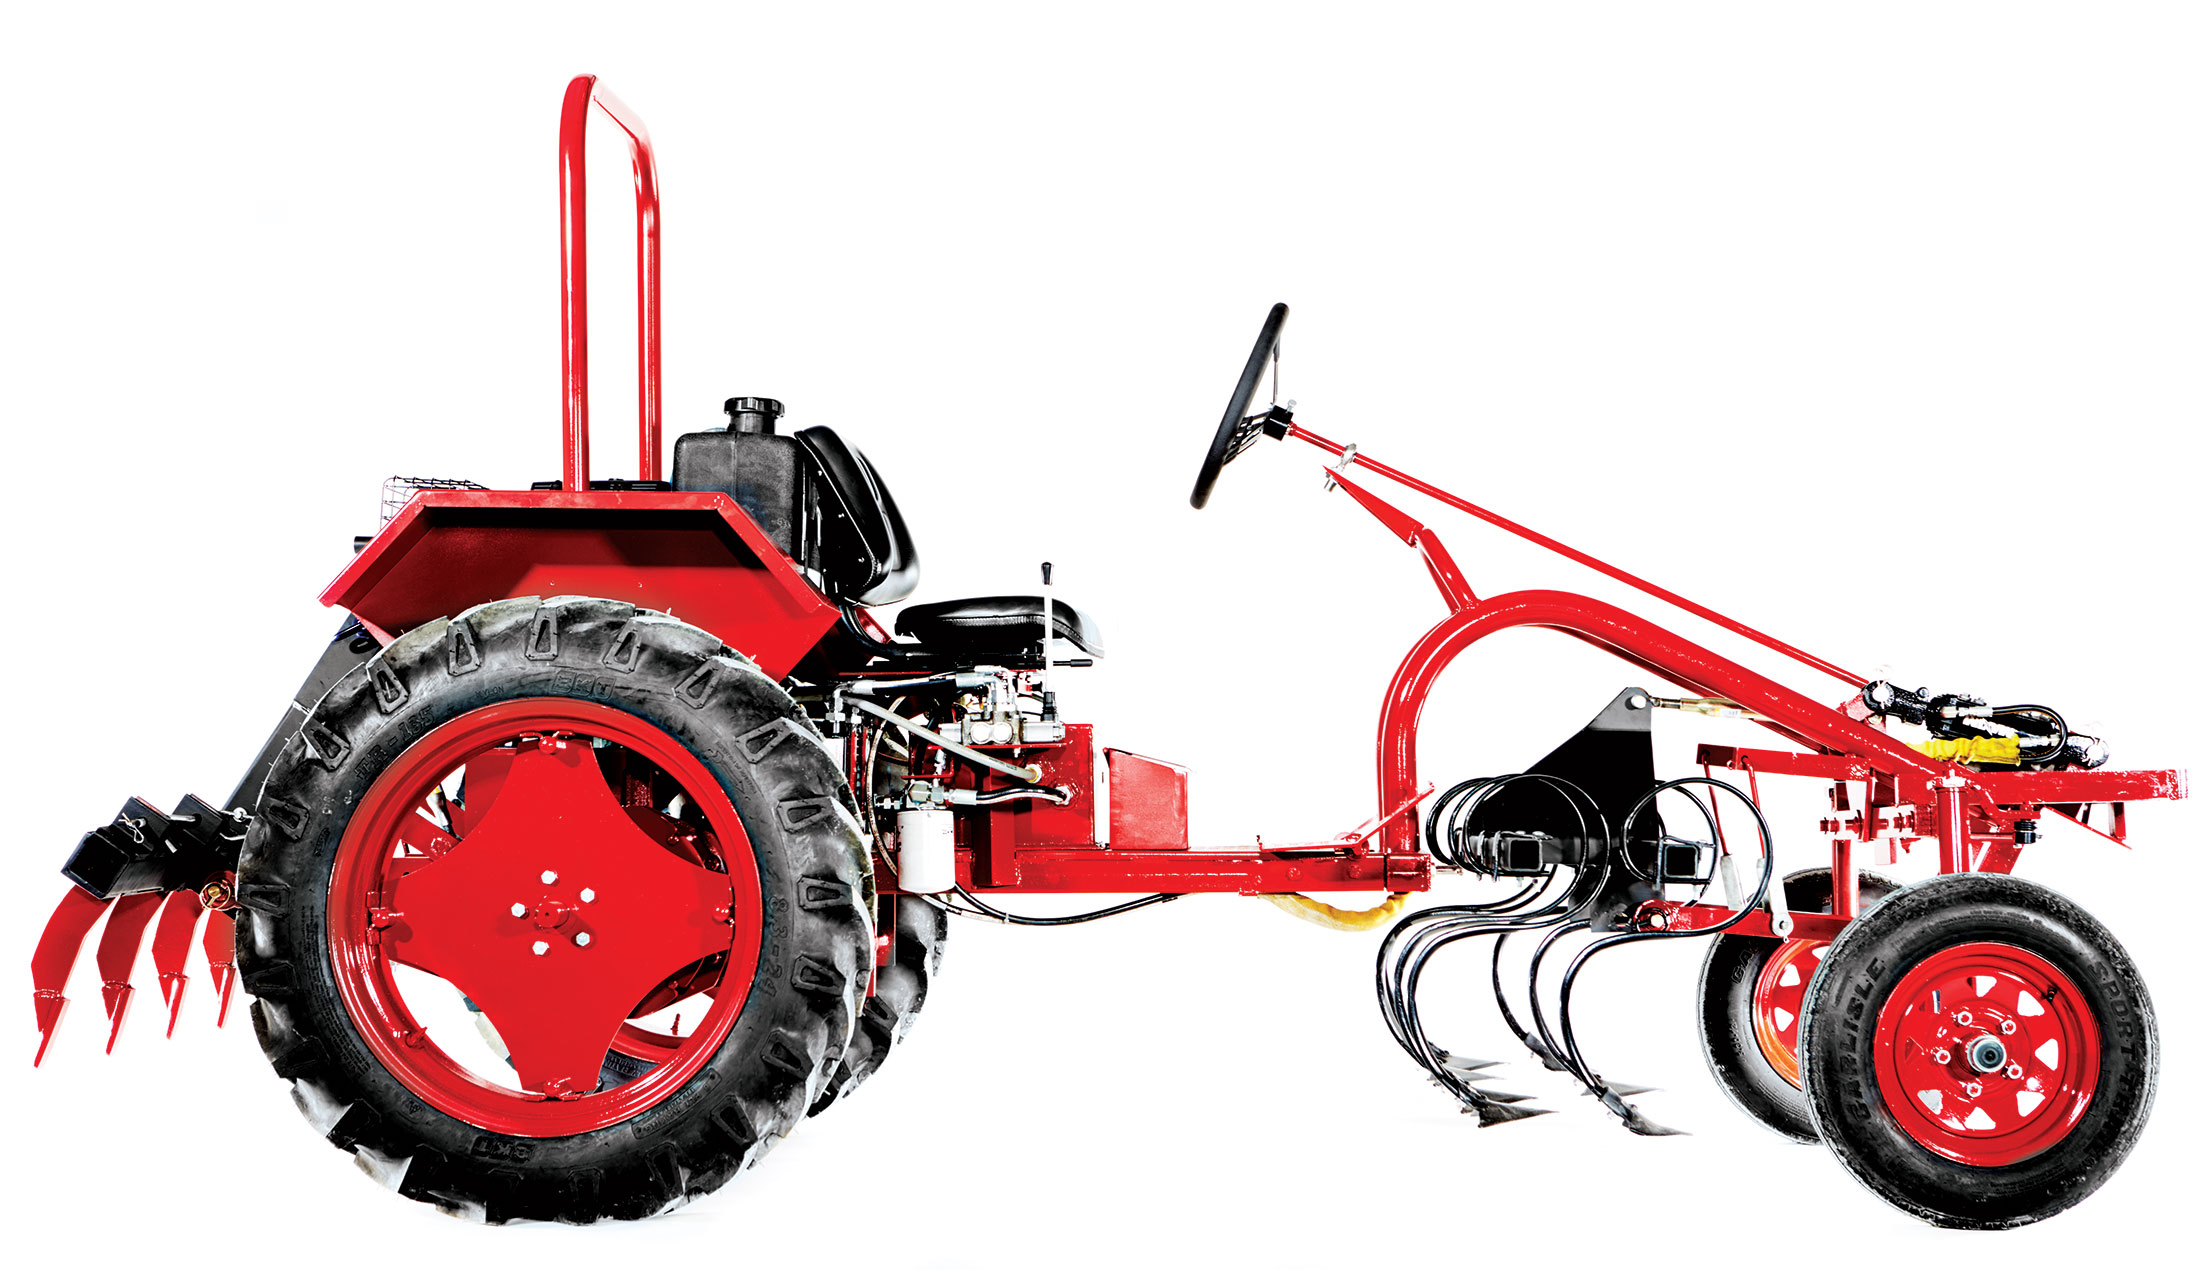 Cubas first american owned manufacturer will make tractors cubas first american owned manufacturer will make tractors bloomberg buycottarizona Gallery